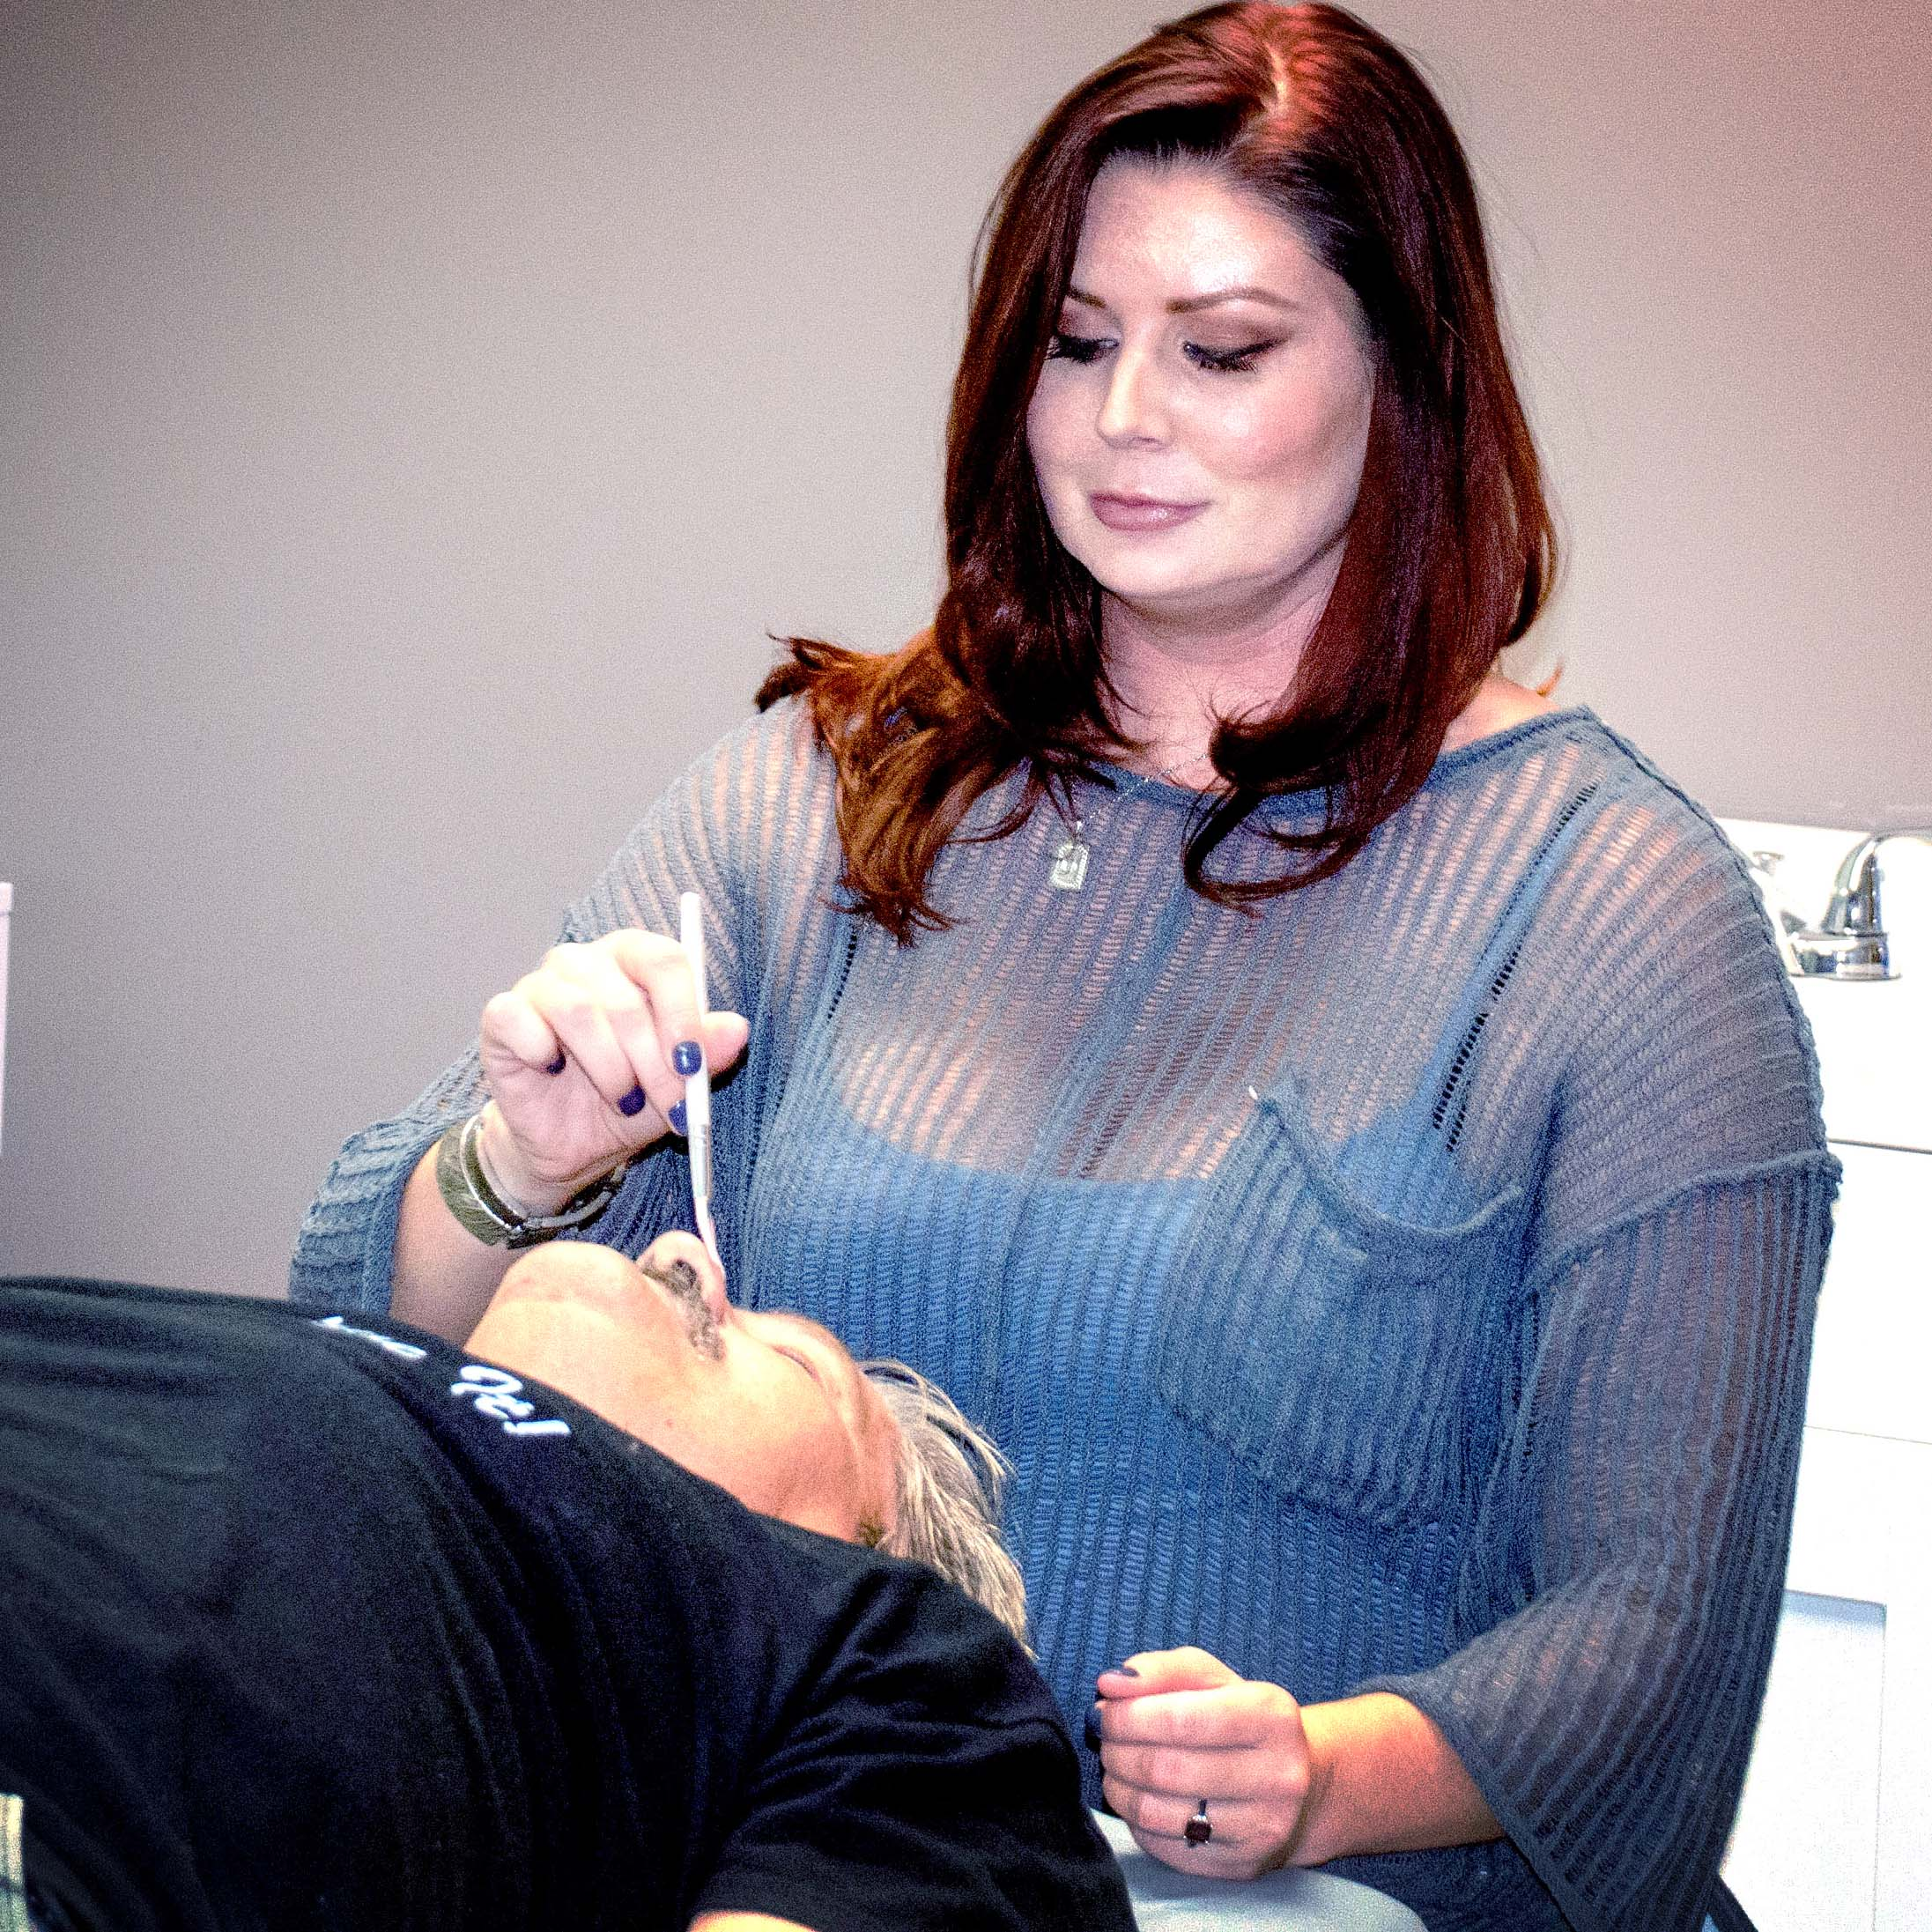 Hillsboro quarterback Matthew Potuceck, No. 5, evades defenders during the first quarter of the Friday's homecoming game. The Trojans beat Lyons 27-14 for their first win of the season.